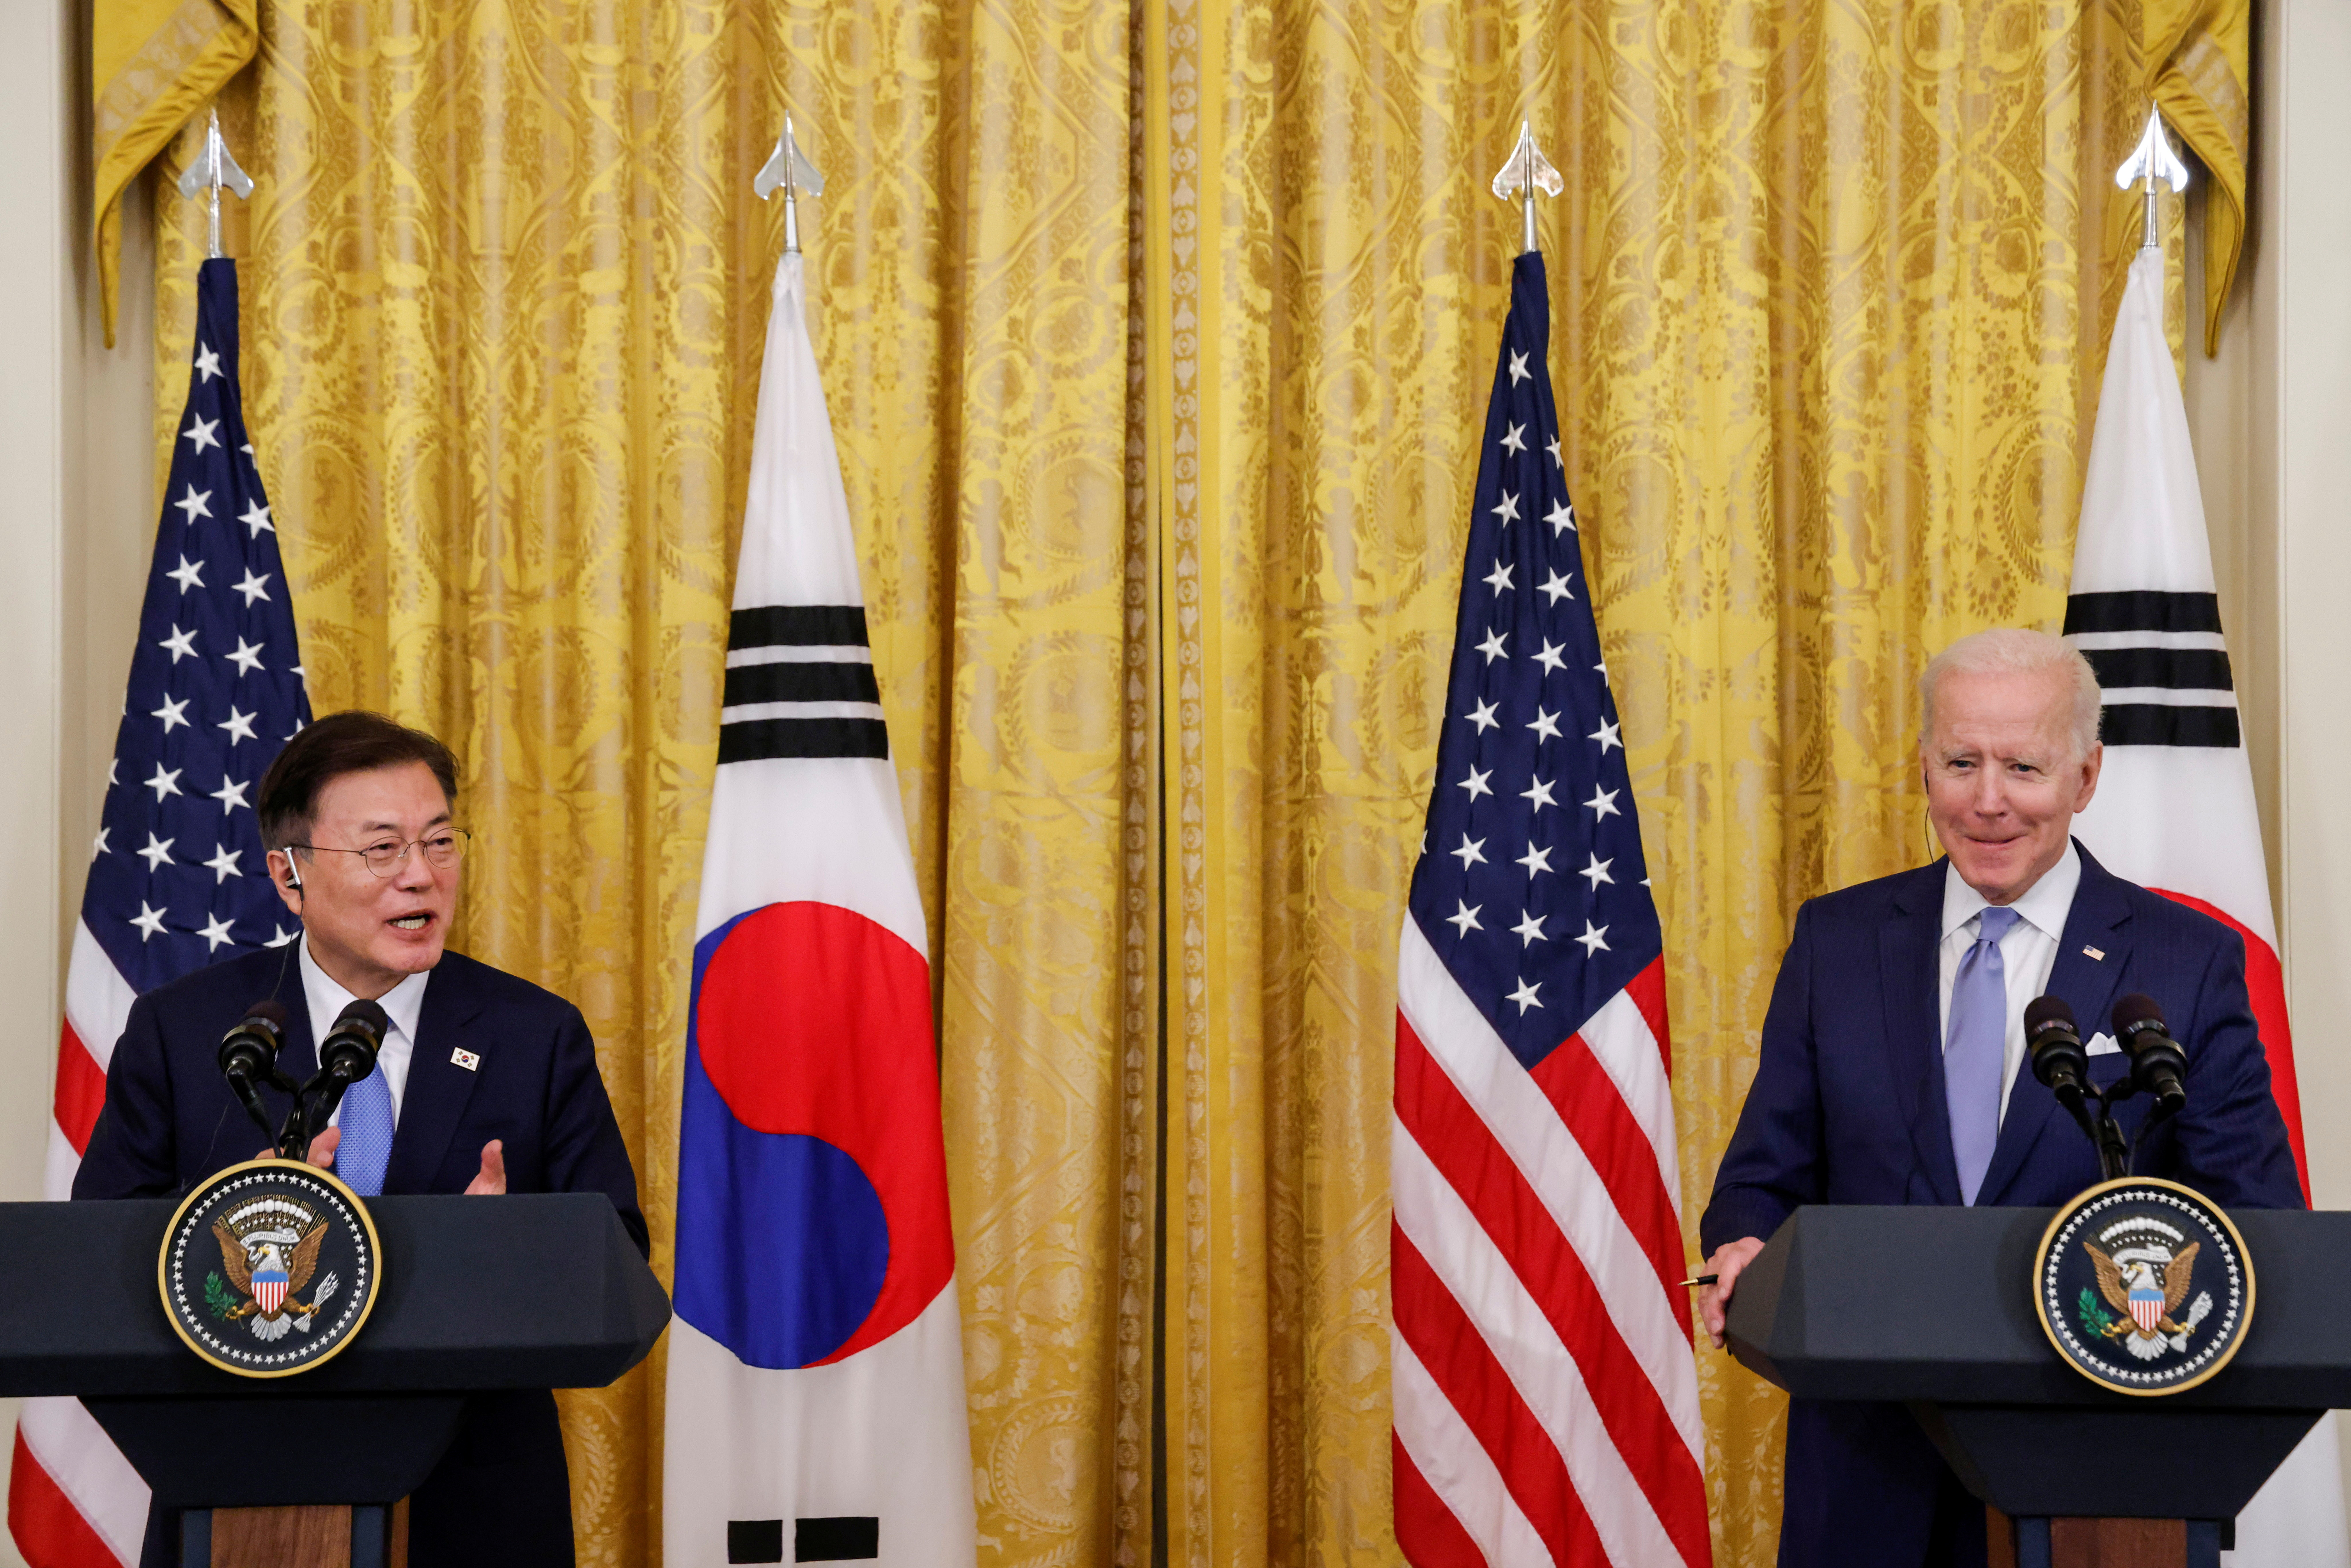 U.S. President Joe Biden reacts as South Korea's President Moon Jae-in speaks during a joint news conference after a day of meetings at the White House, in Washington, U.S. May 21, 2021.  REUTERS/Jonathan Ernst - RC2NKN9QTJNQ